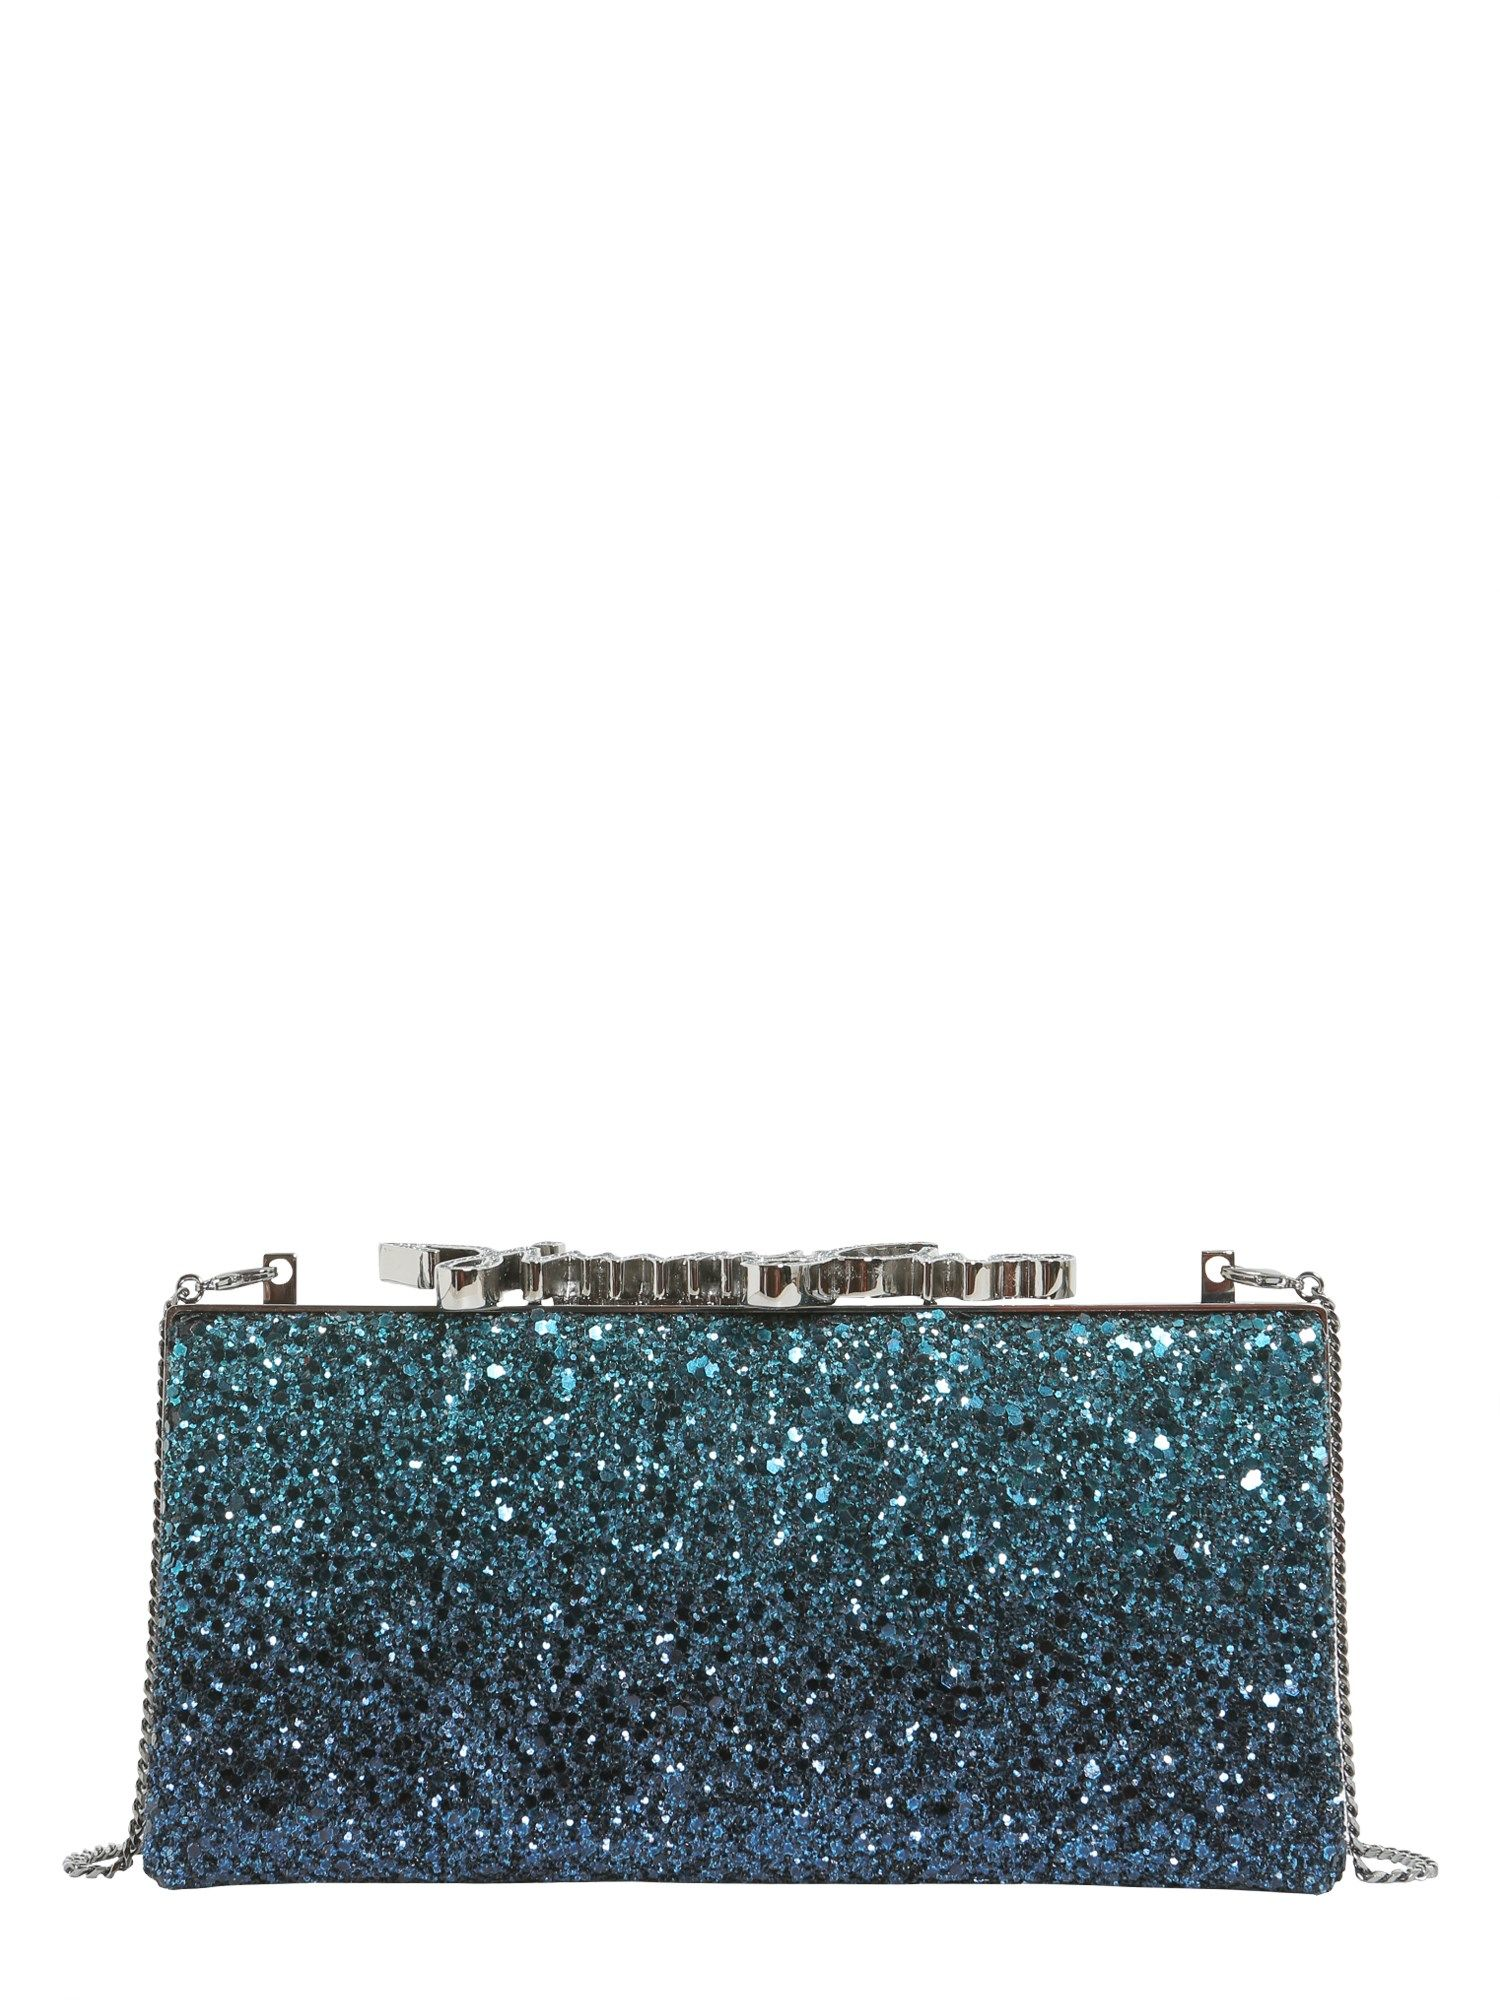 f42d00d04e Celeste Clutch from Italist on Shop And Ship Worldwide Maldives  Buy ...